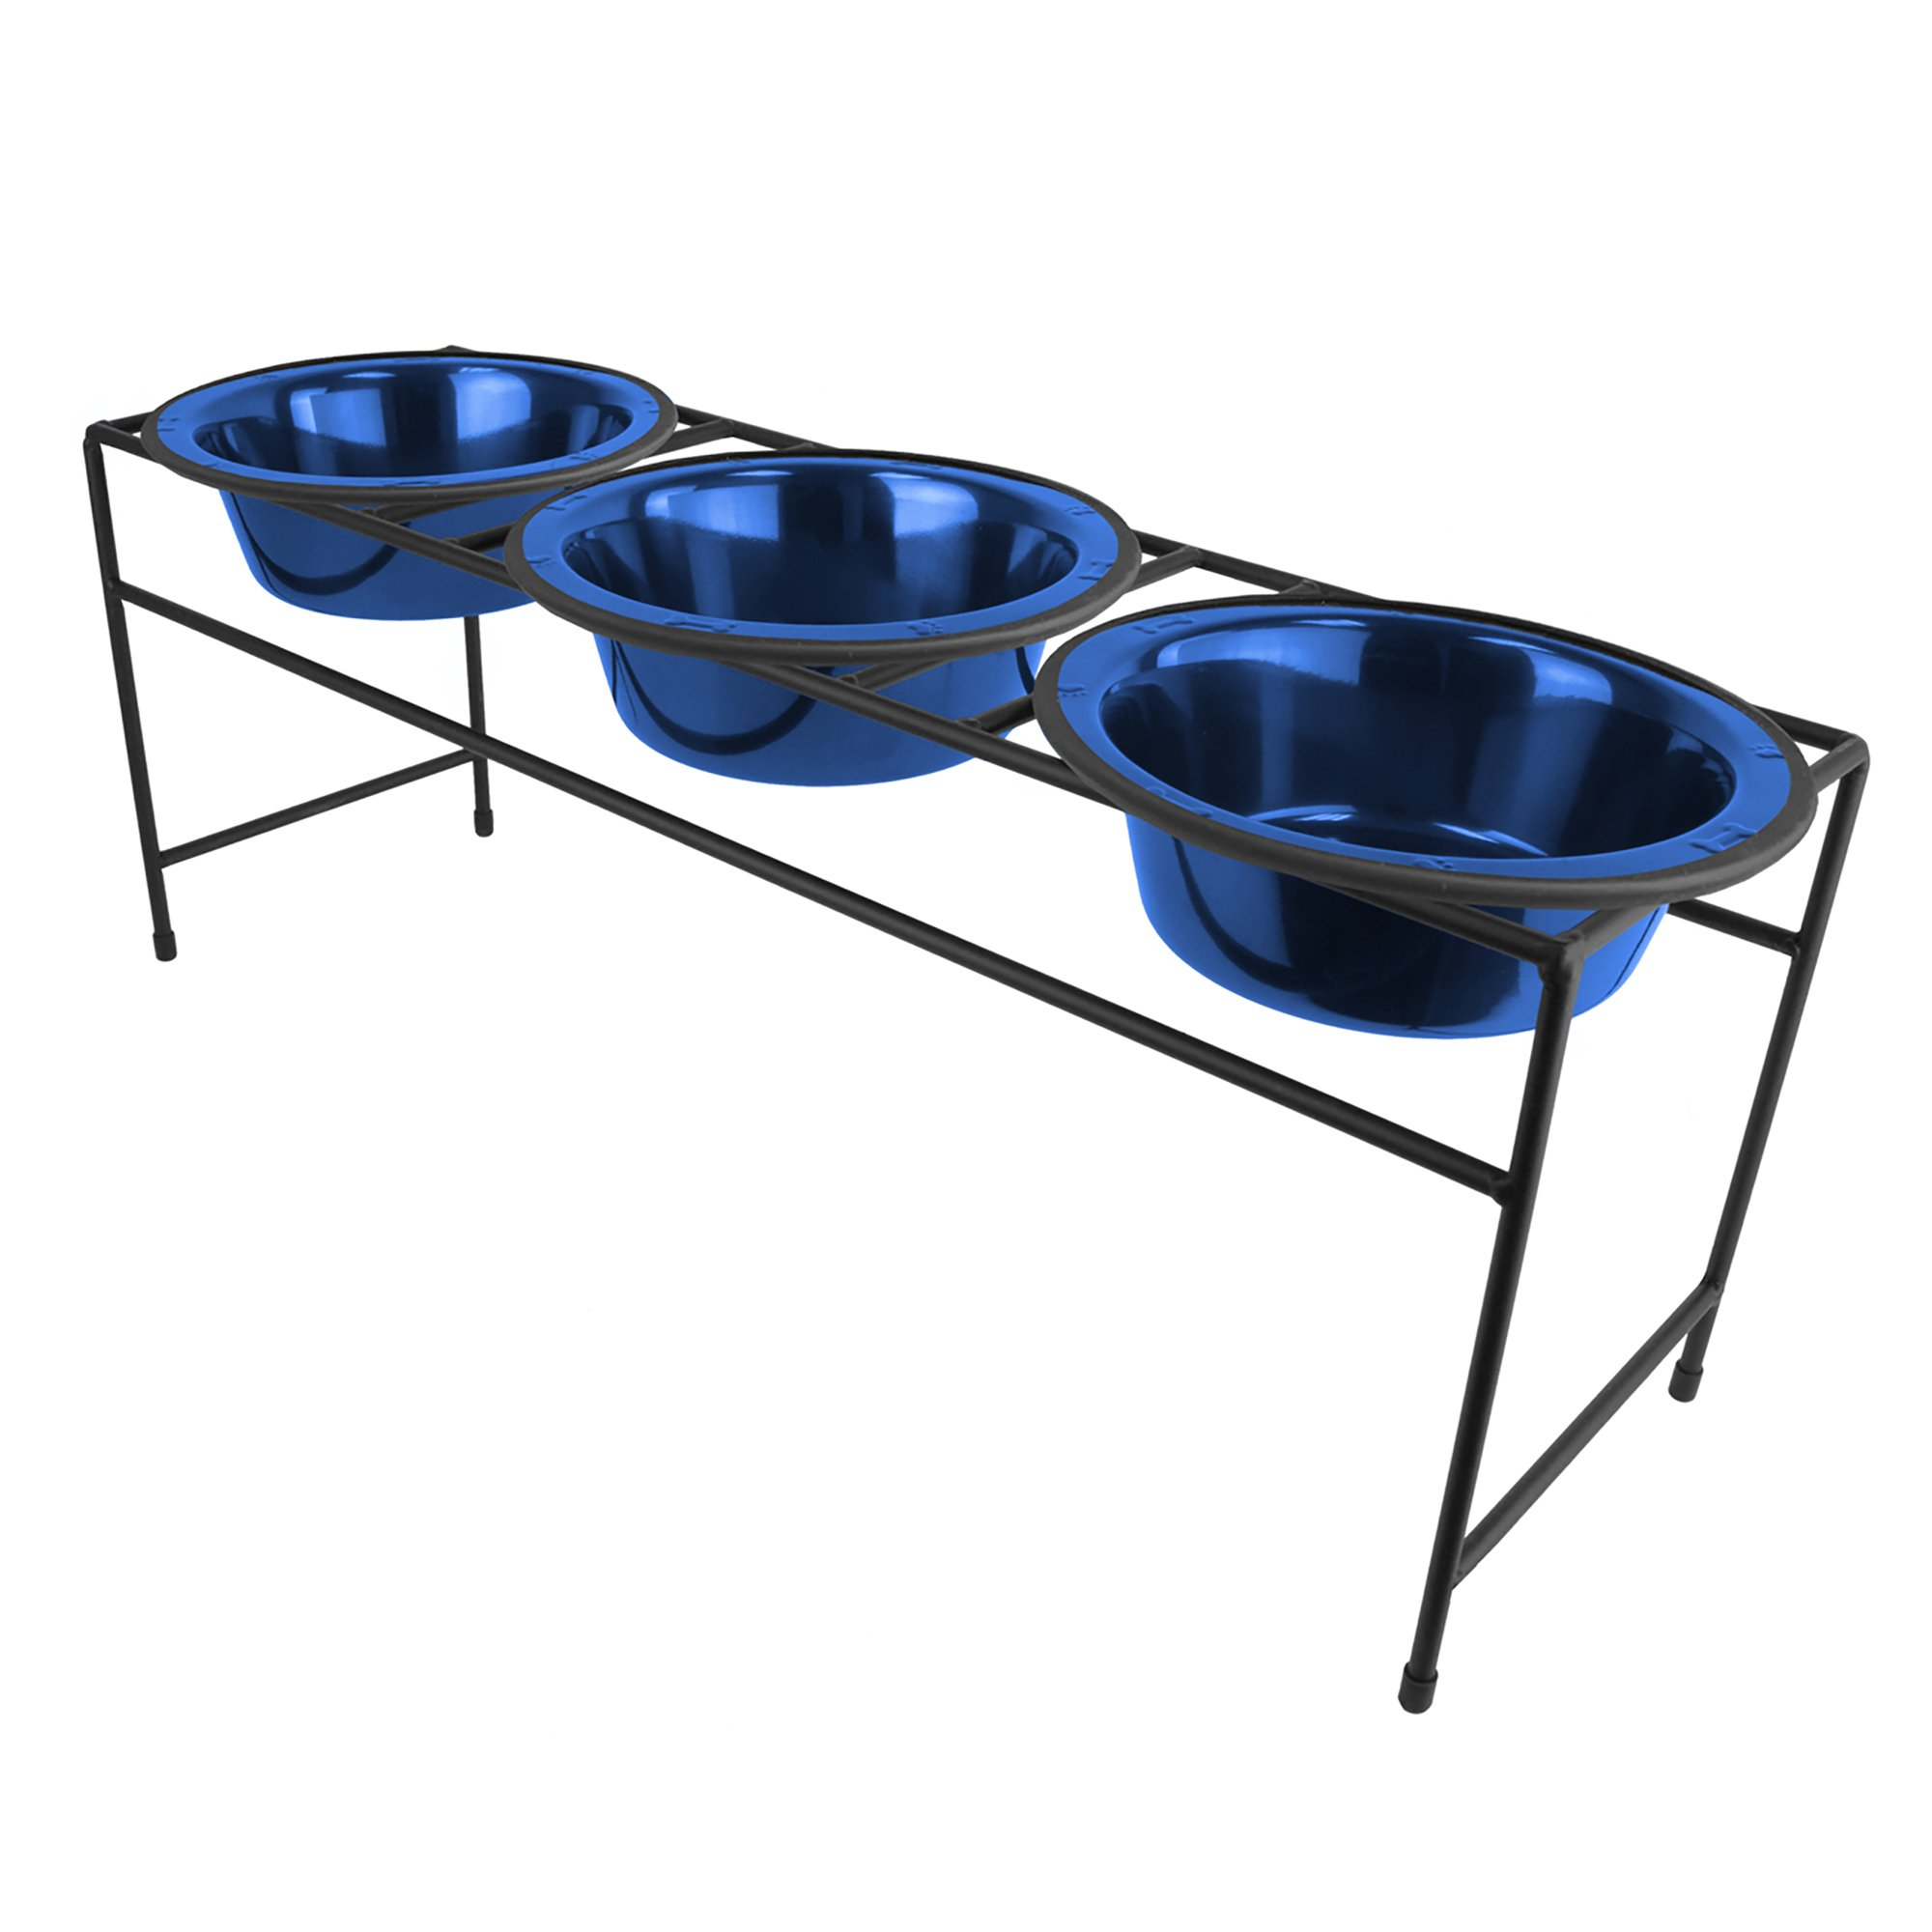 Platinum Pets Triple Diner Feeder with Stainless Steel Dog Bowls, 6.25 cup/50 oz, Sapphire Blue